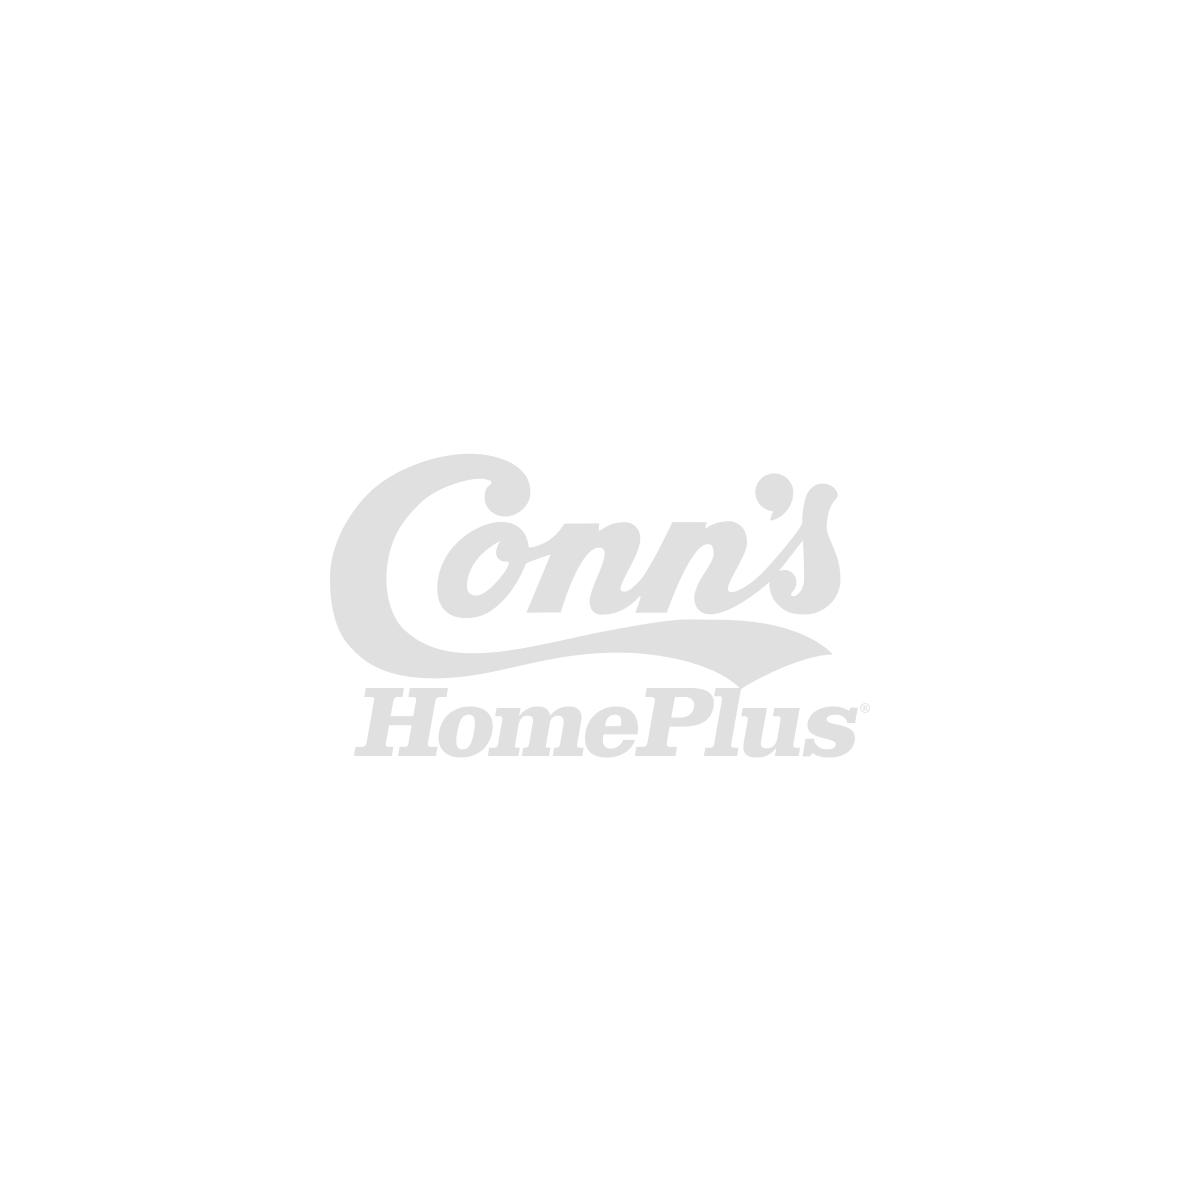 Frigidaire 24'' Built-In Dishwasher Stainless Steel